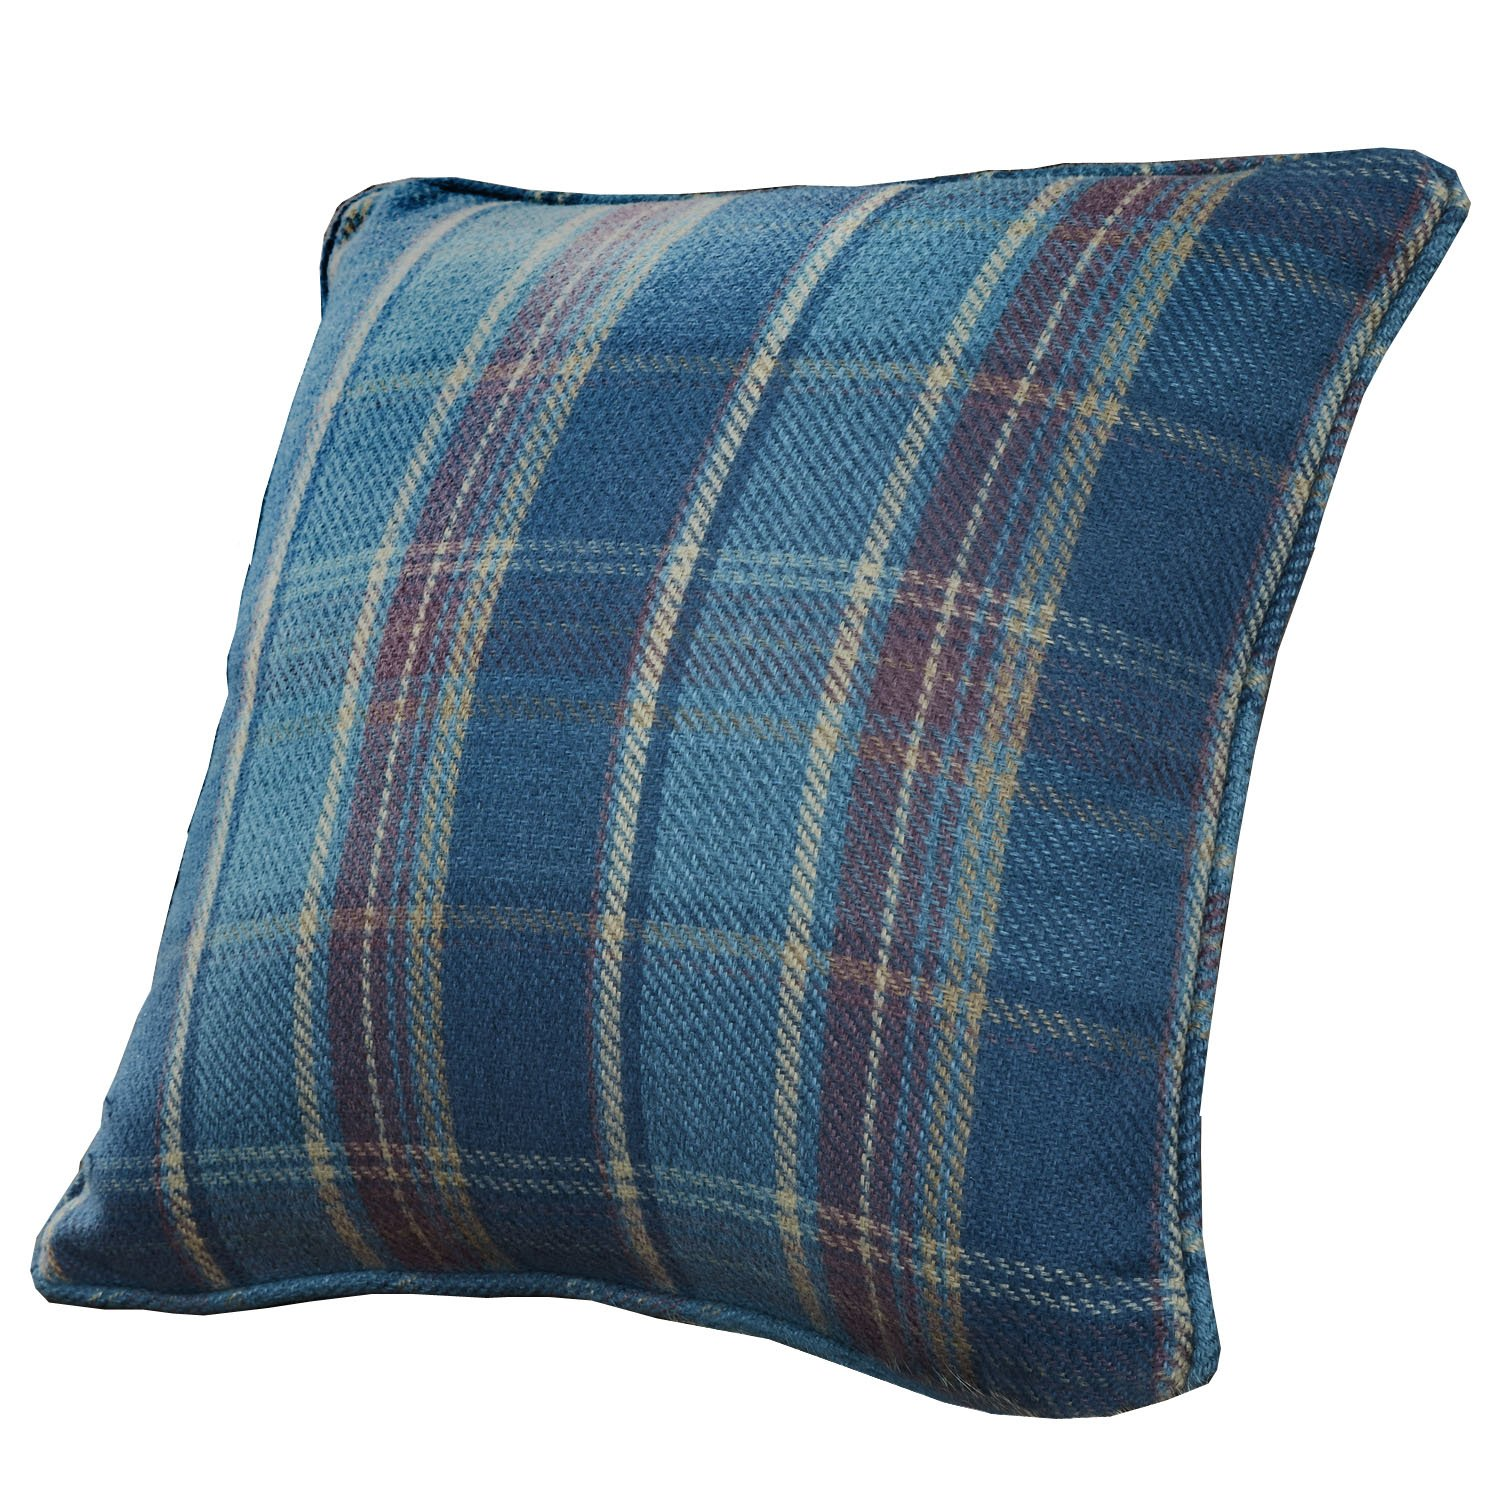 Curtina Cameron Tartan Check Filled Cushion, Teal, 43 x 43 Cm J Rosenthal BROTL437FP1